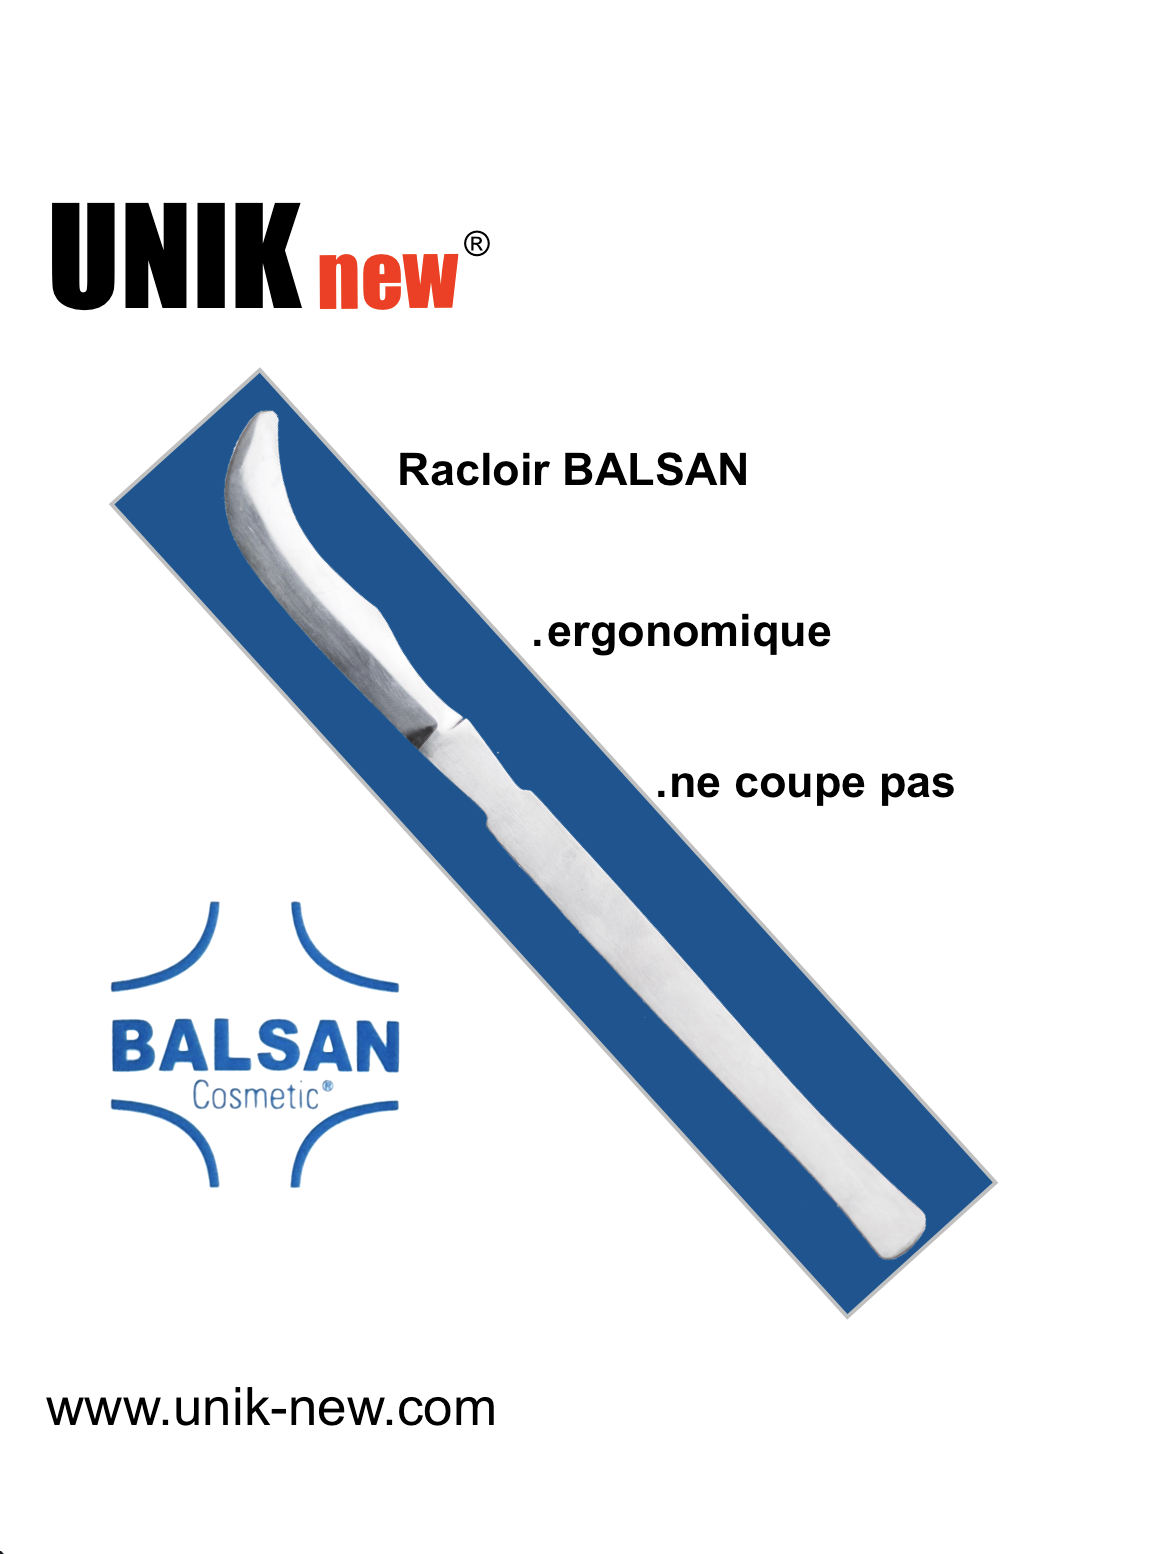 Balsan boutique 2020 racloir